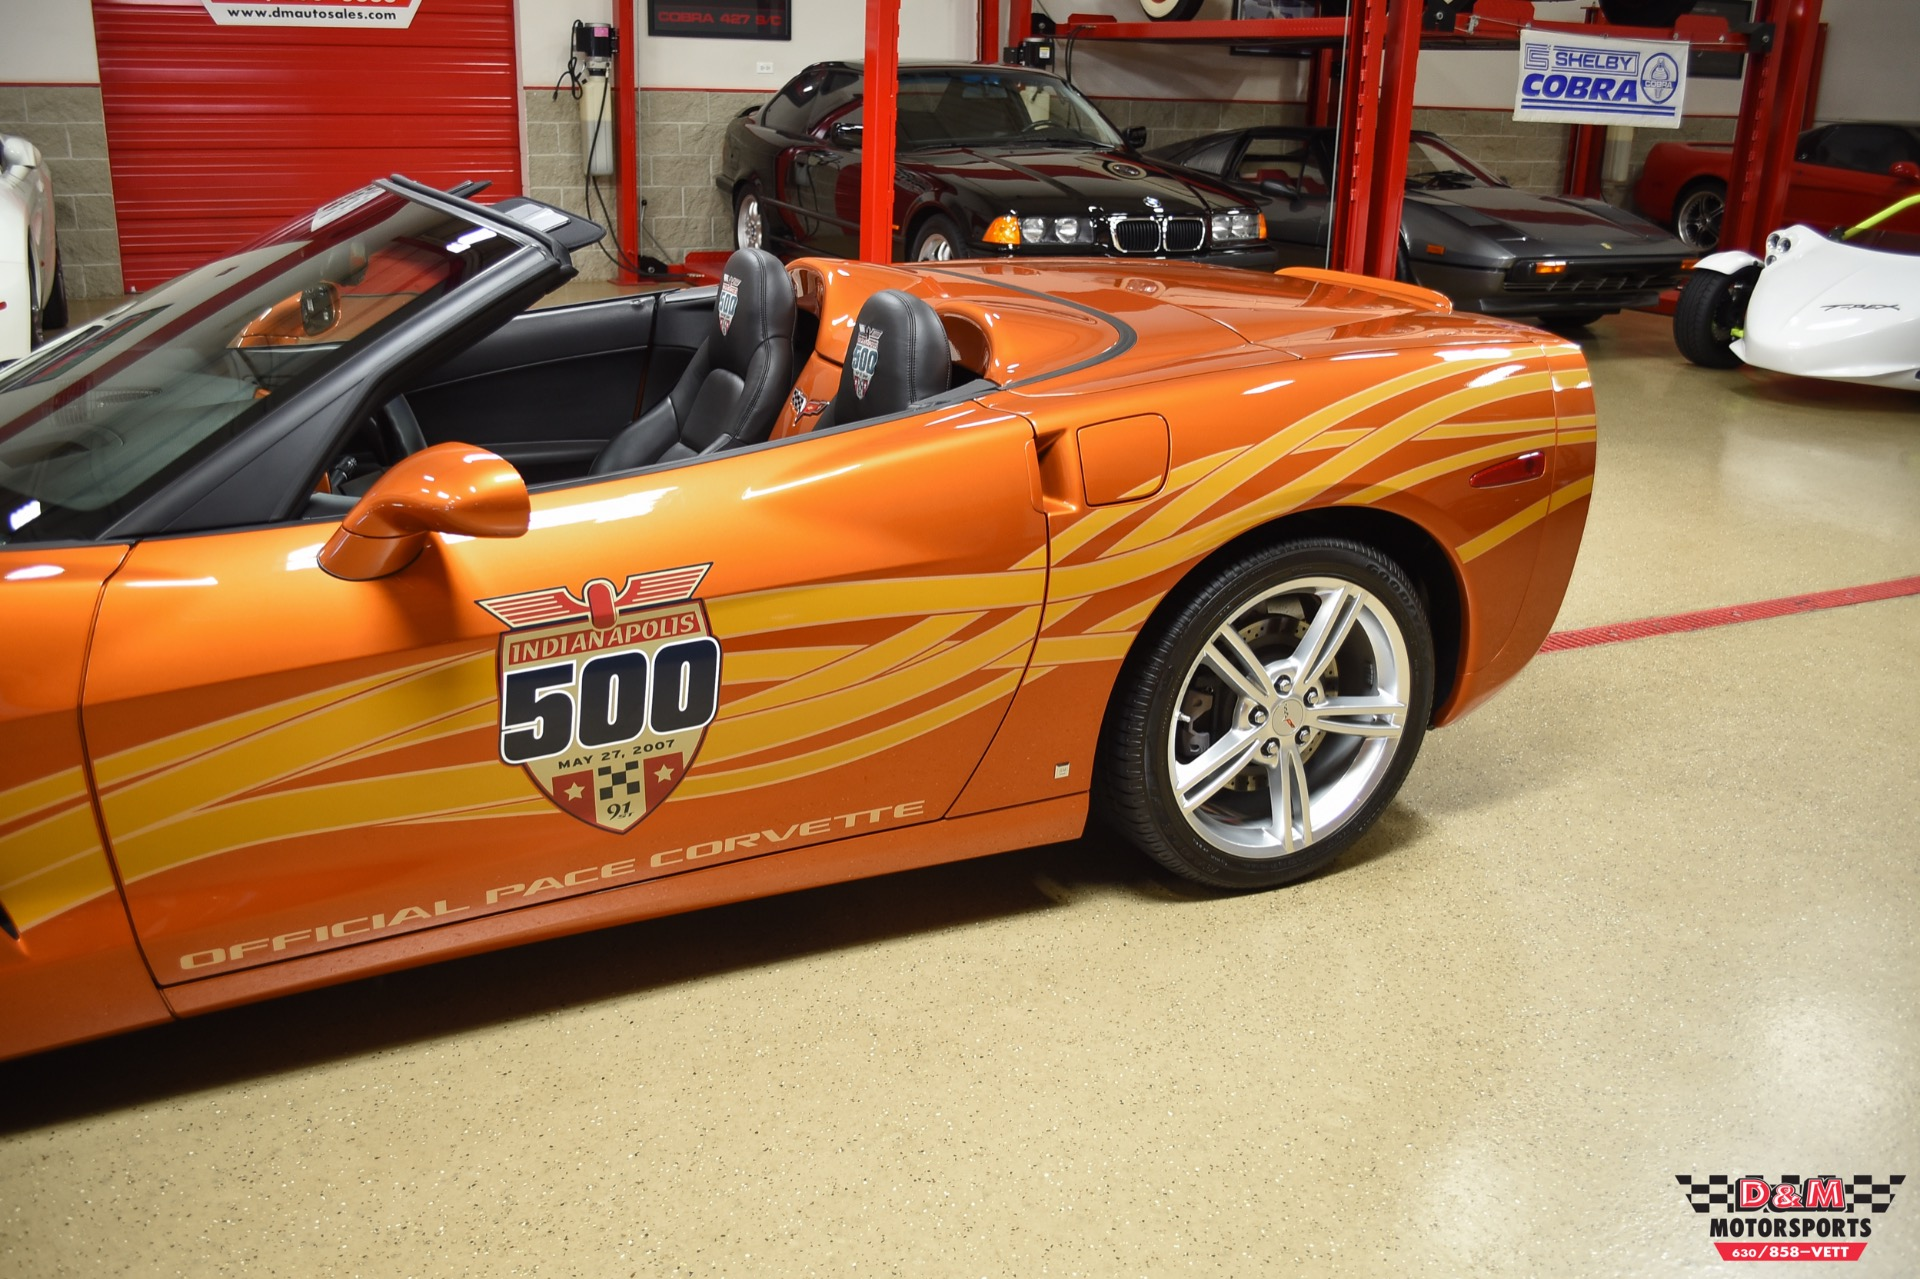 Used 2007 Chevrolet Corvette Indy Pace Car Edition | Glen Ellyn, IL